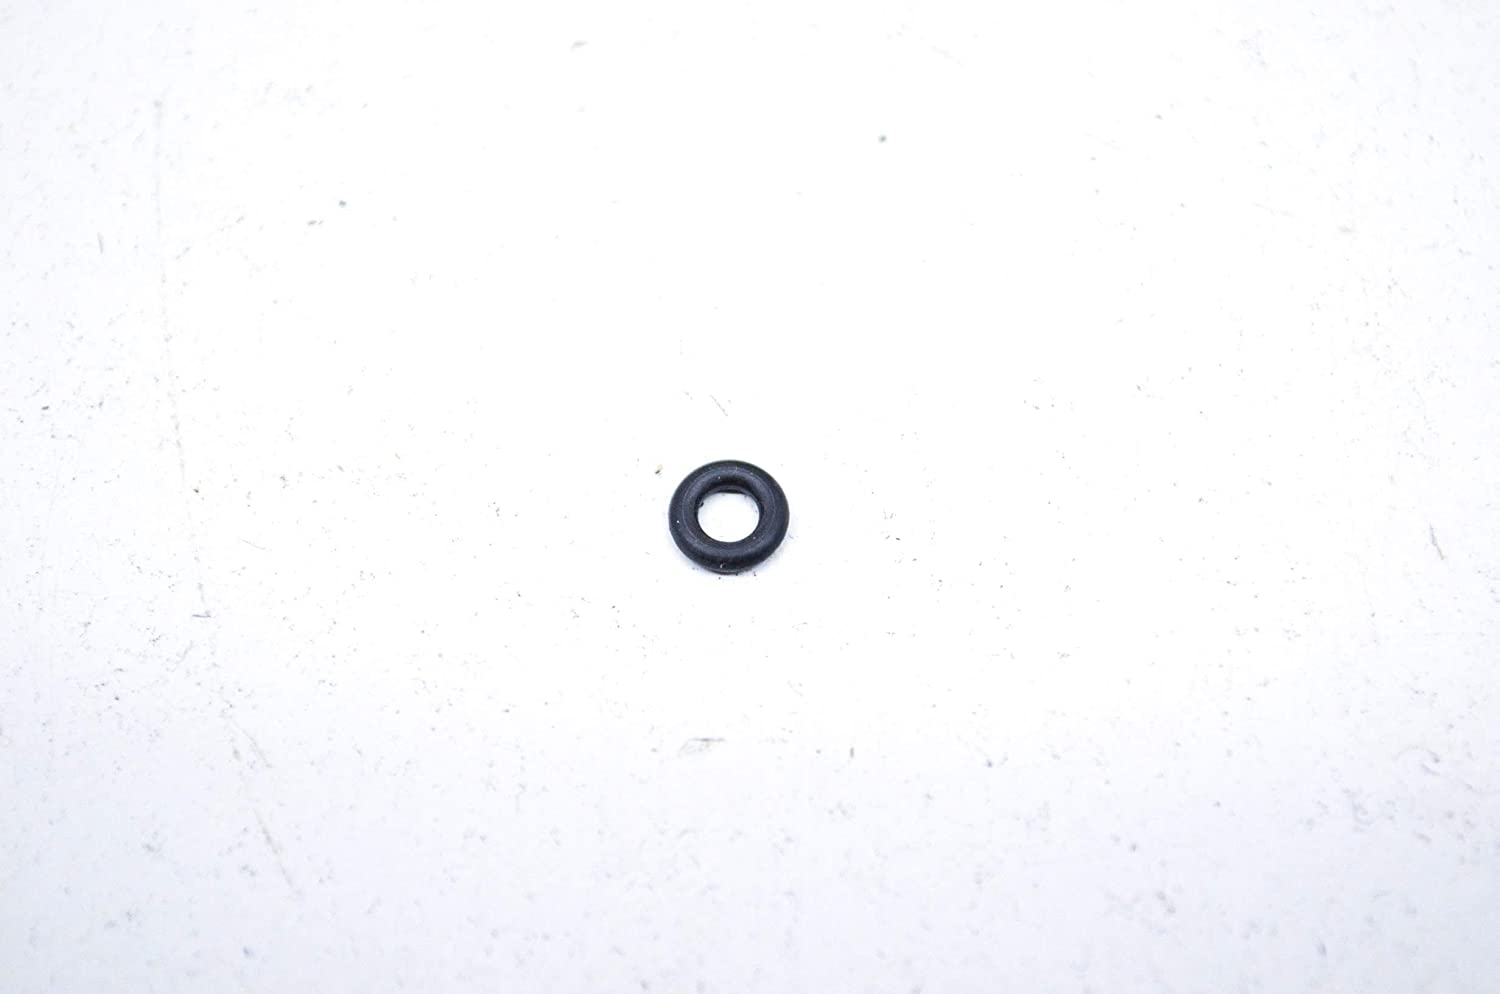 Yamaha 5H0-14397-00-00 O-Ring; ATV Motorcycle Snow Mobile Scooter Parts